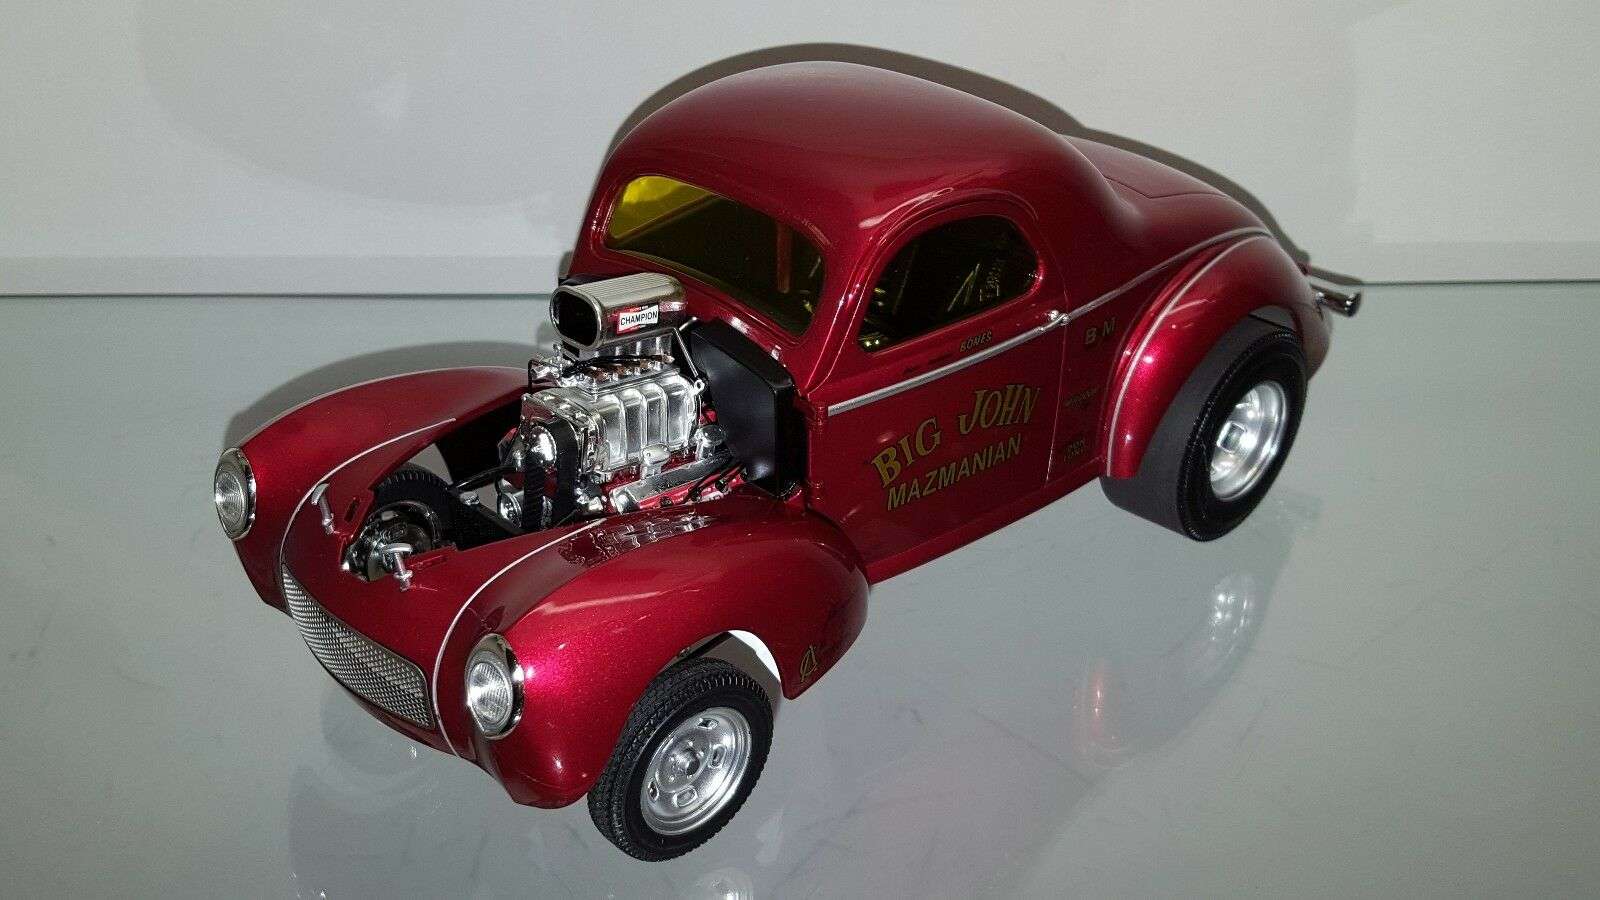 1 18 ACME BIG JOHN MAZMANIAN 1941 WILLYS GASSER RED 1 of 2500 rd-2